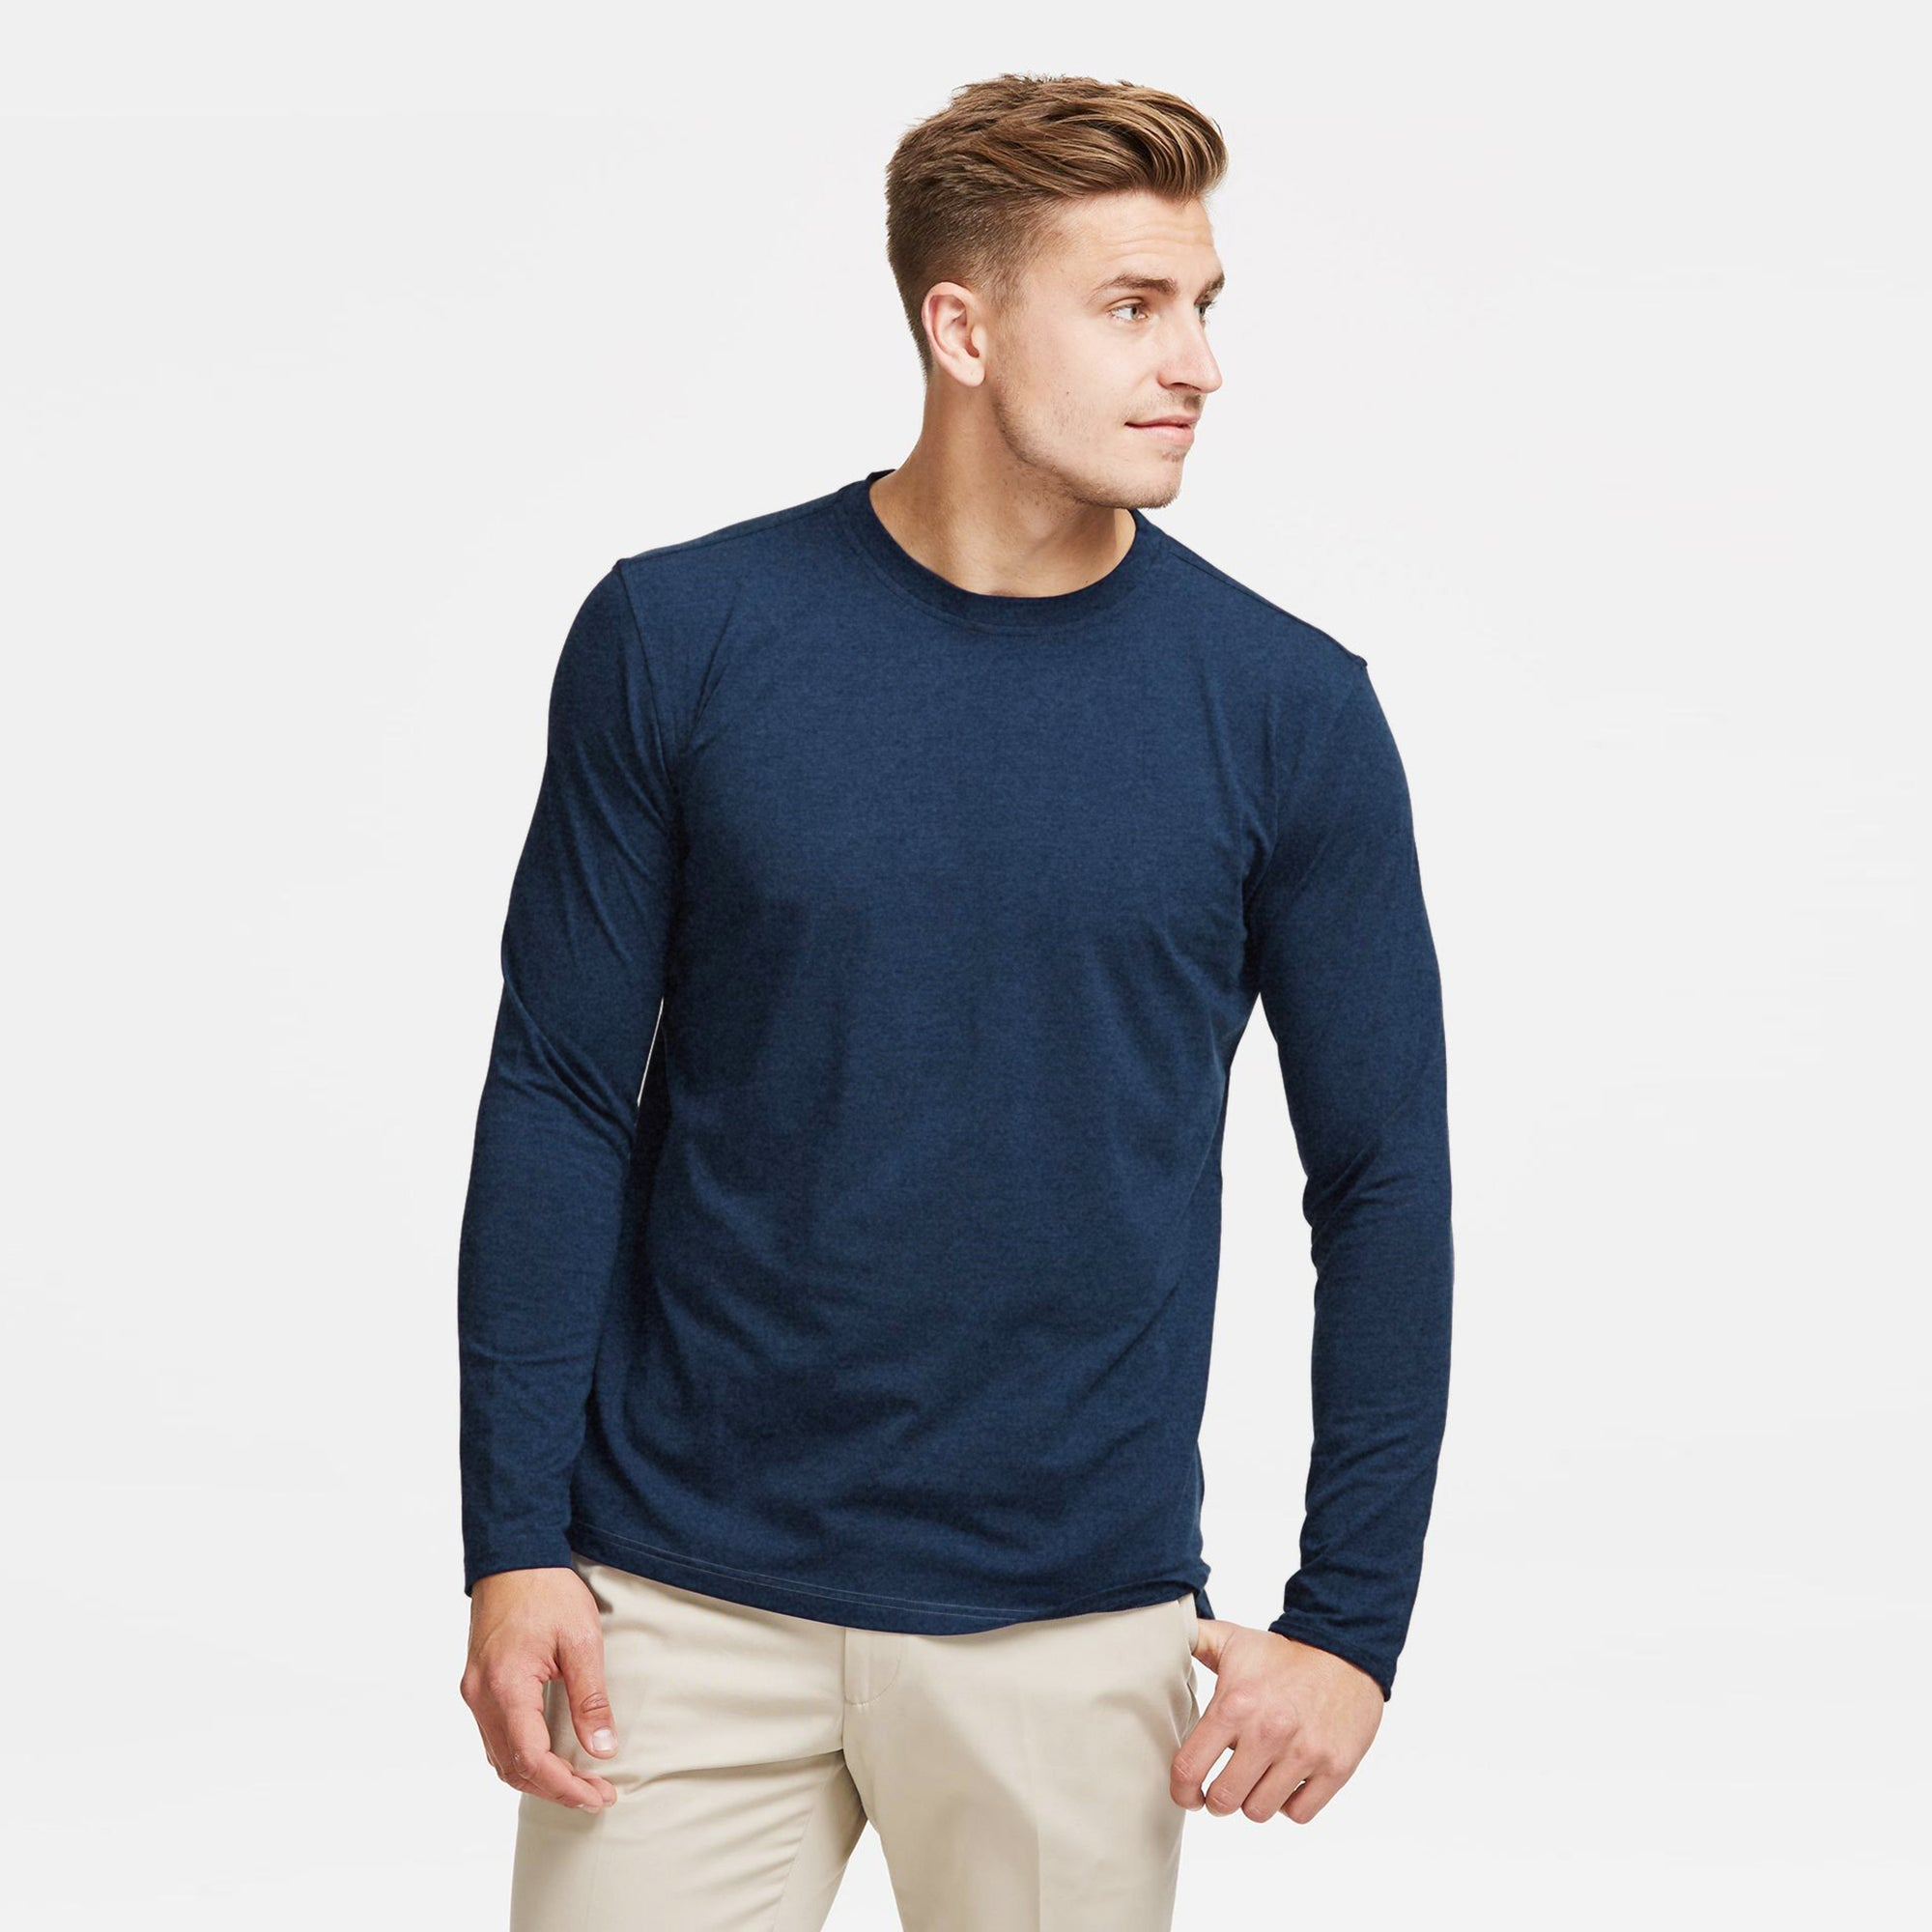 Beverly Hills Polo Club Single Jersey Shirt For Men-Navy Melange-BE8168